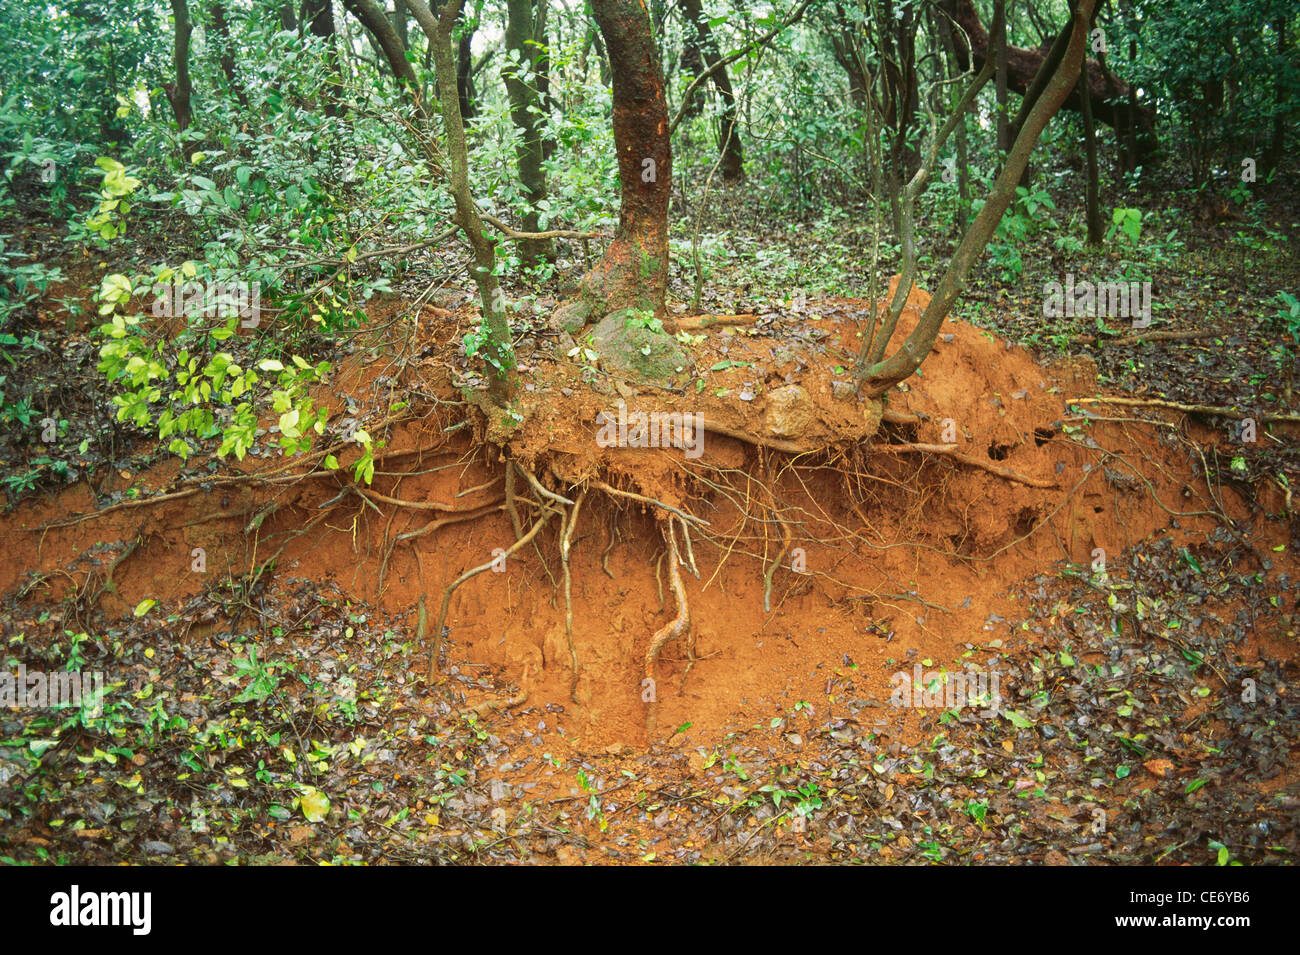 Mbt 86378 ecology soil erosion tree roots cross section for Soil erosion in hindi